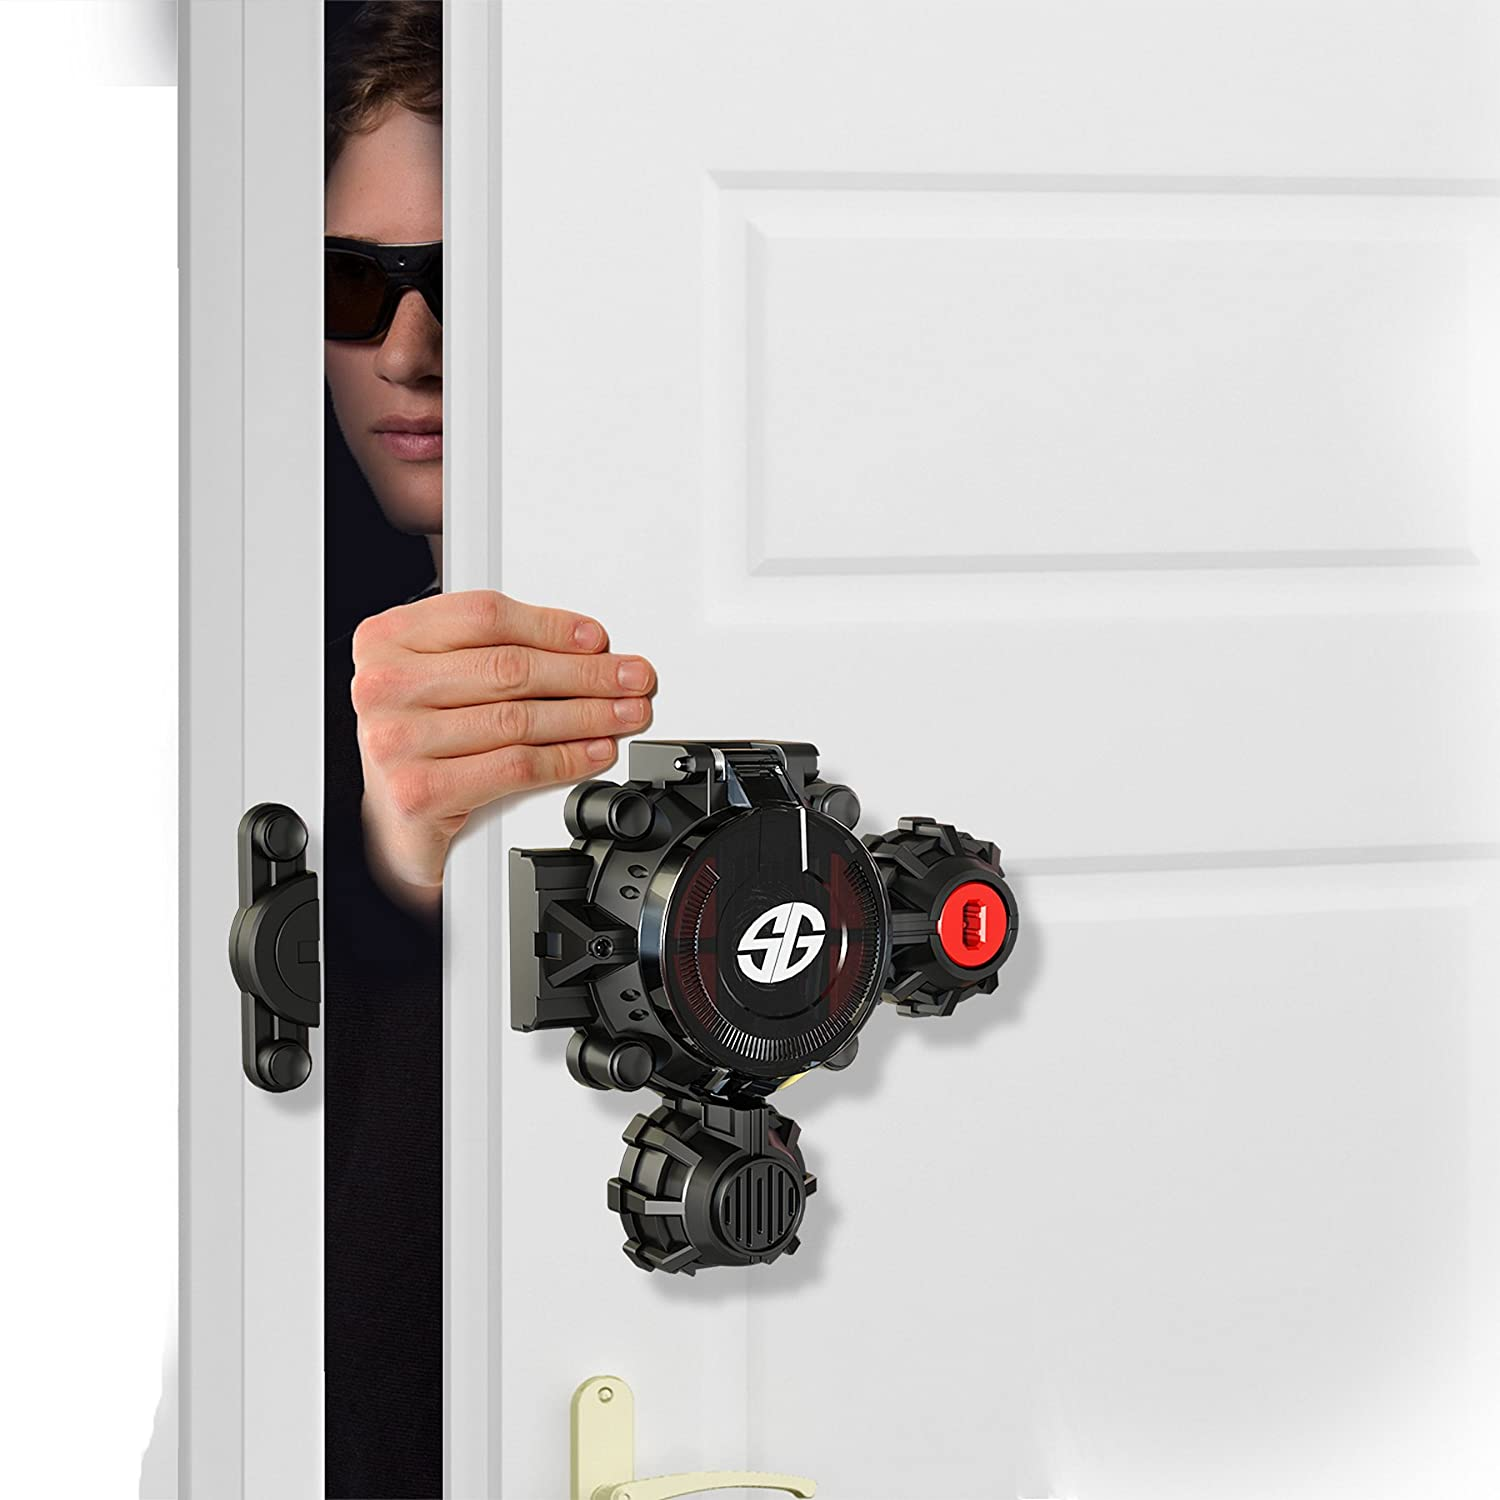 & Amazon.com: Spy Gear - Door Alarm: Toys u0026 Games